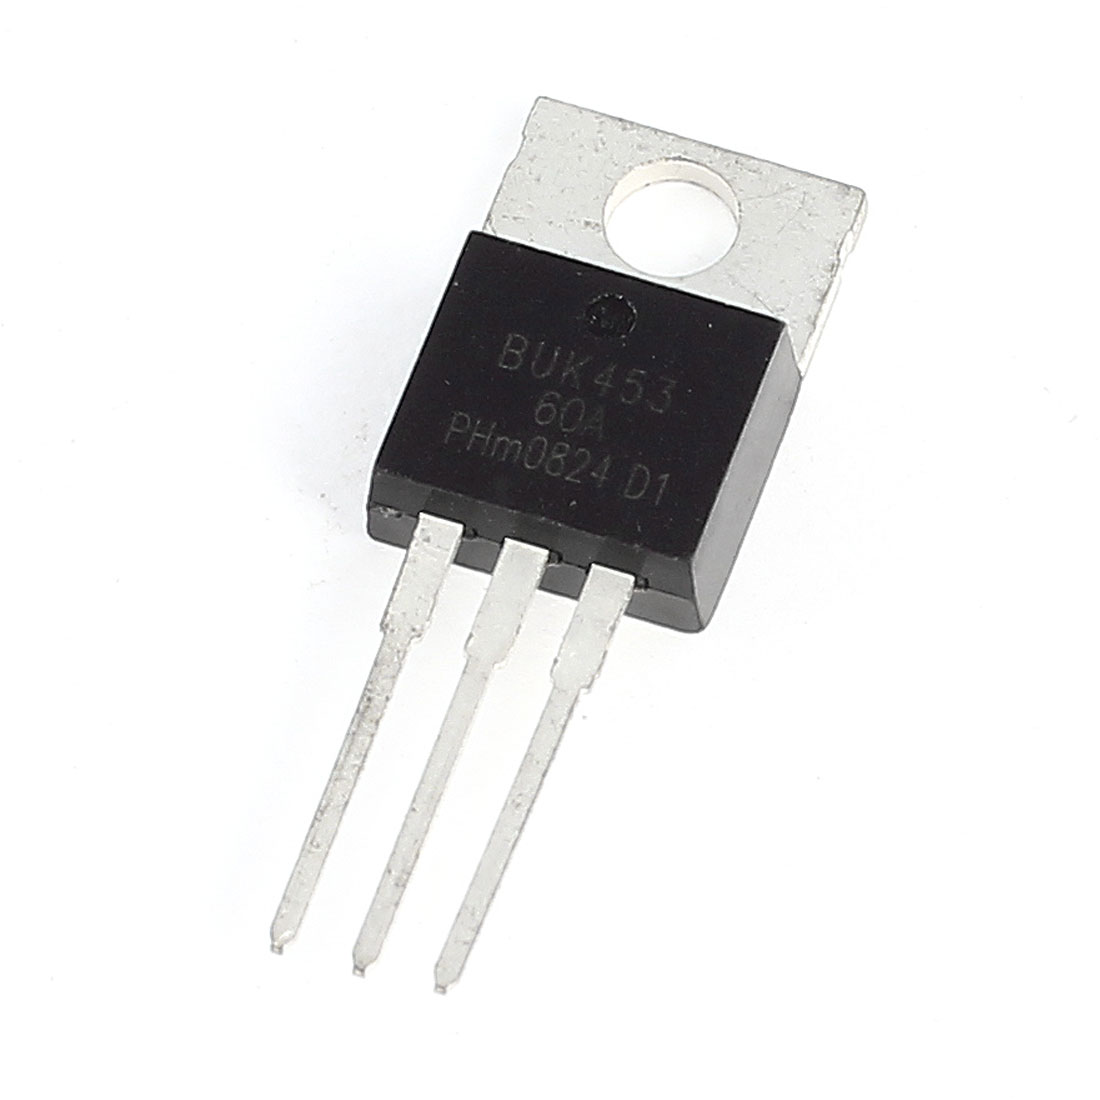 BUK453 60A 1W 1dB 3 Pin Terminals TO-220 Package MOS Mosefet Power Transistor